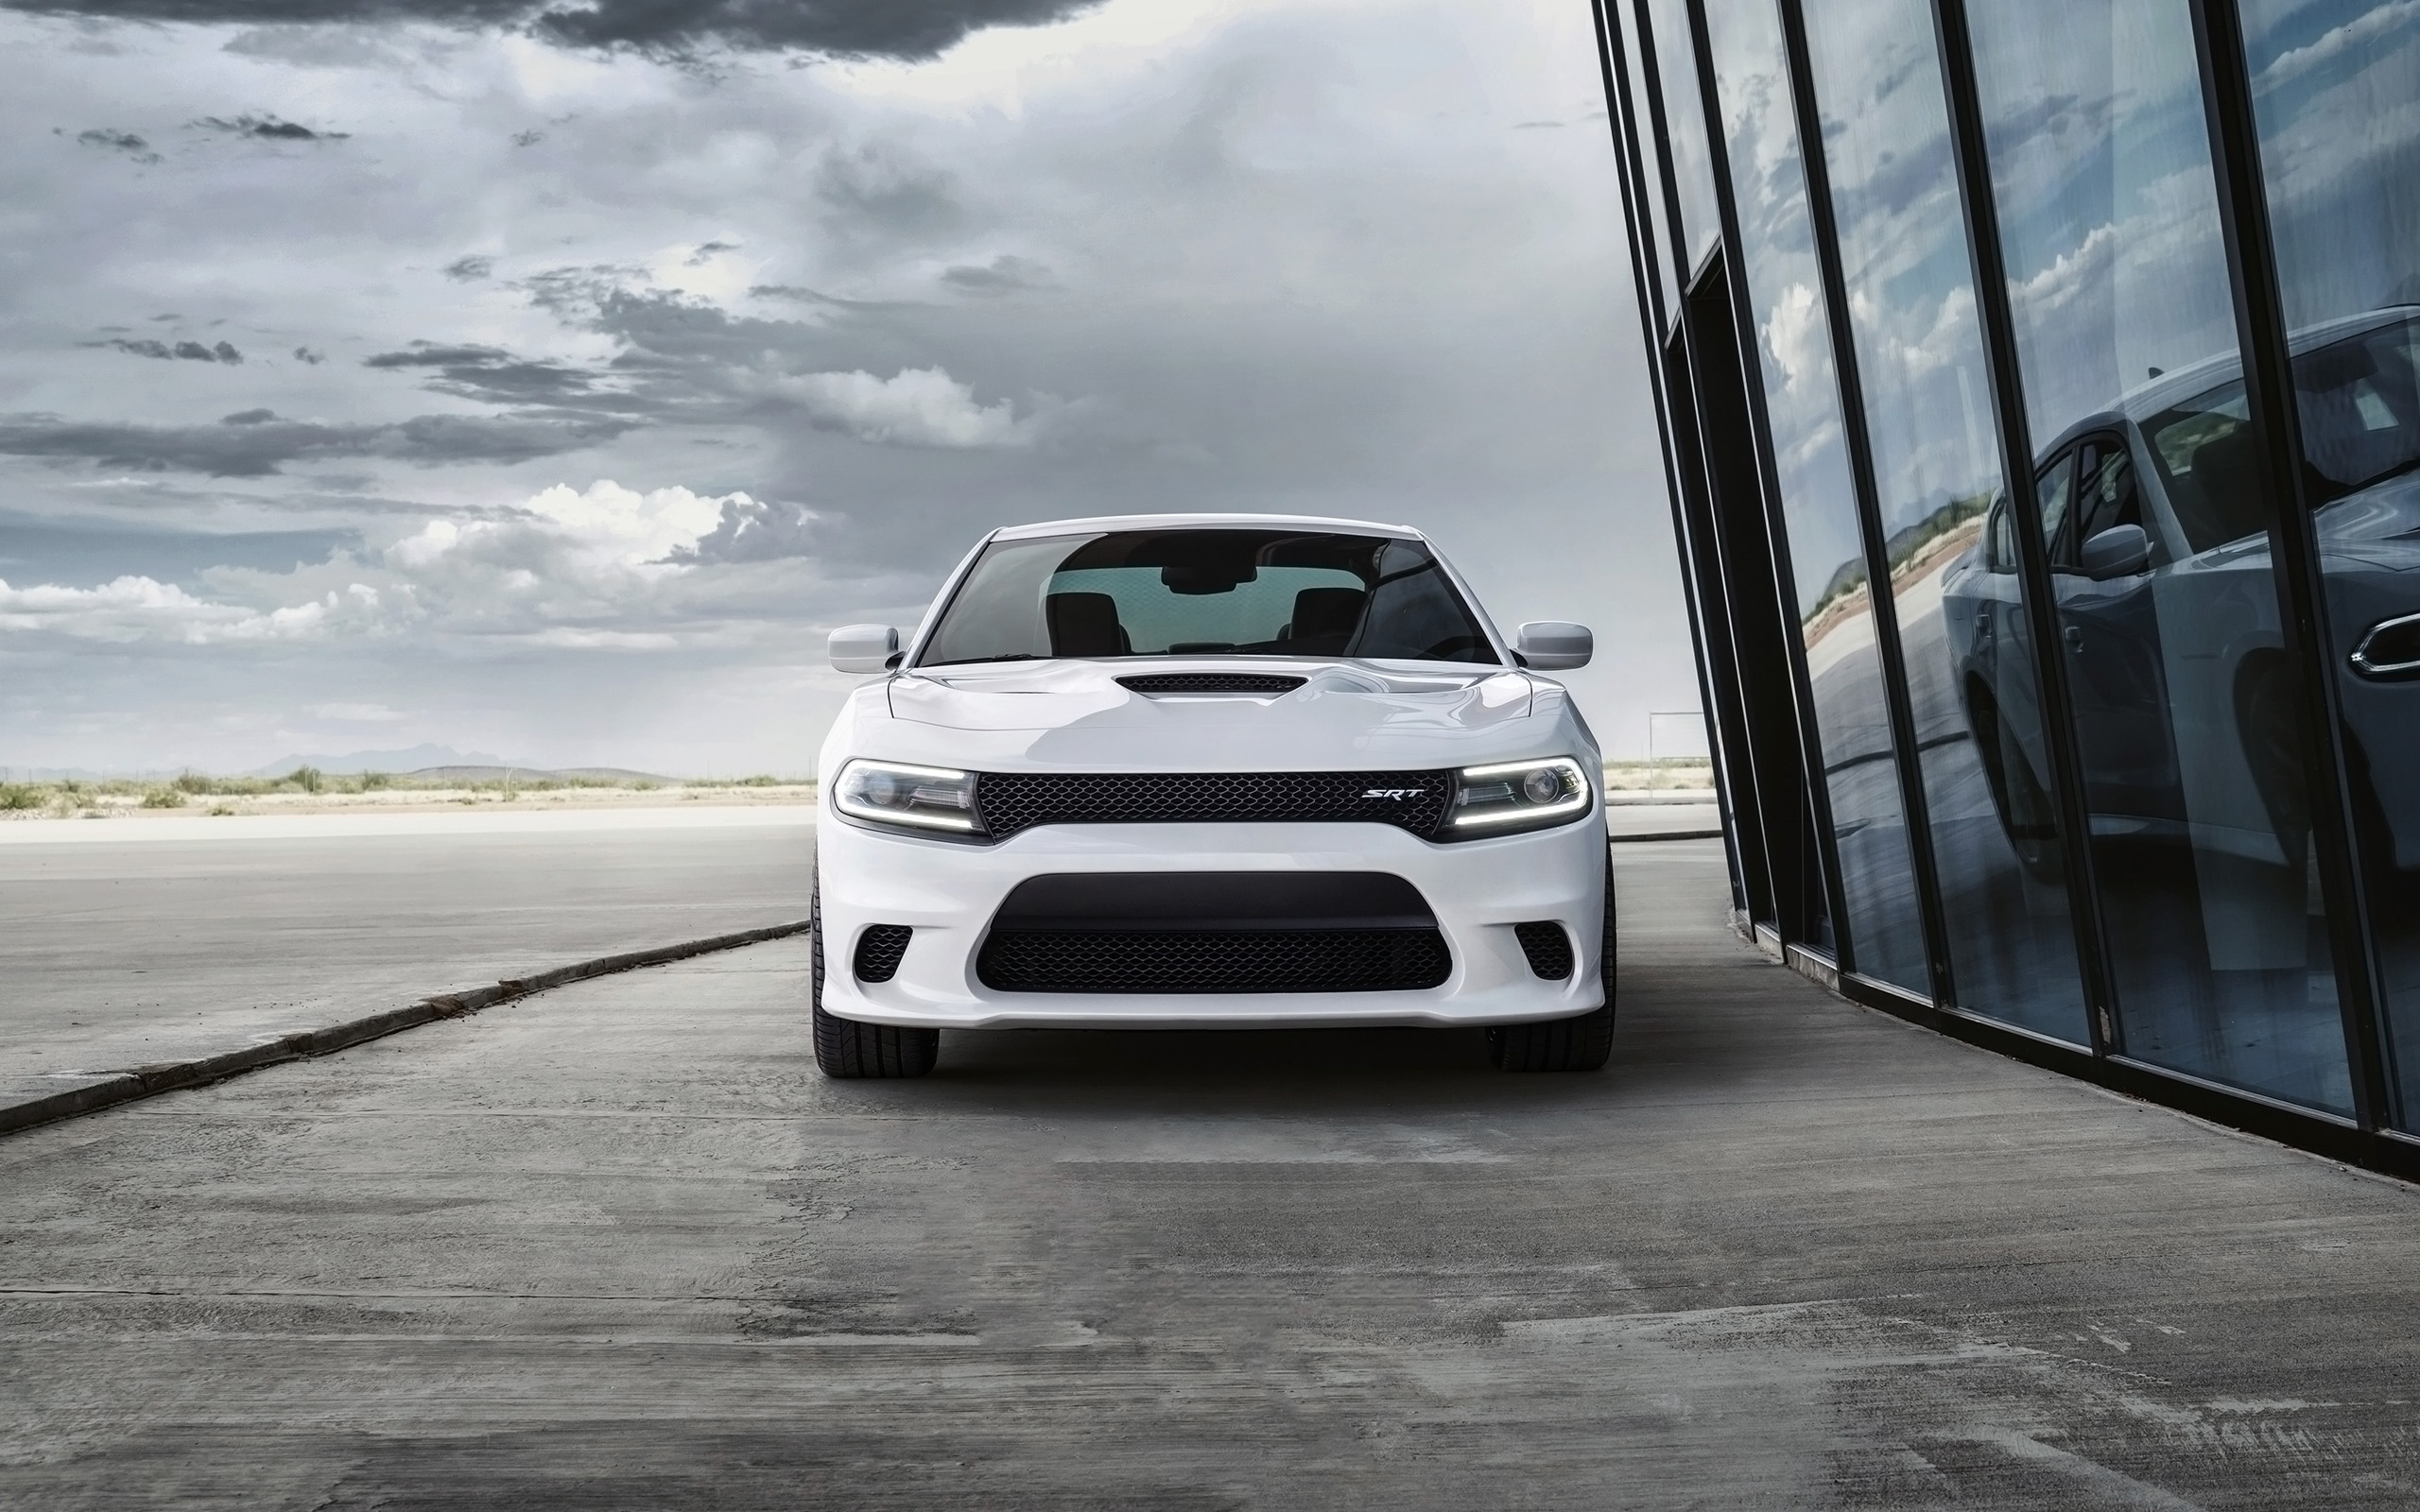 15 Excellent Hd Dodge Wallpapers